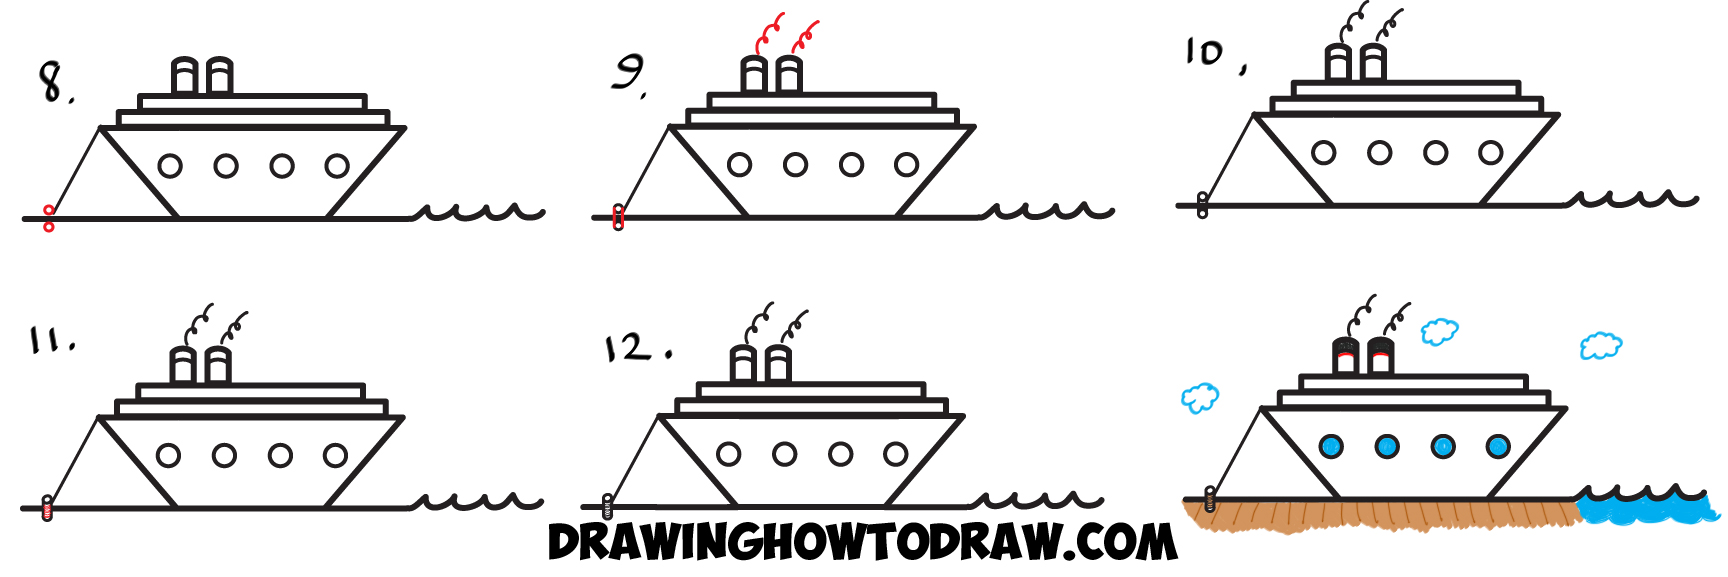 howtodraw-cartoon-ship-letter-z-drawing-tutorial